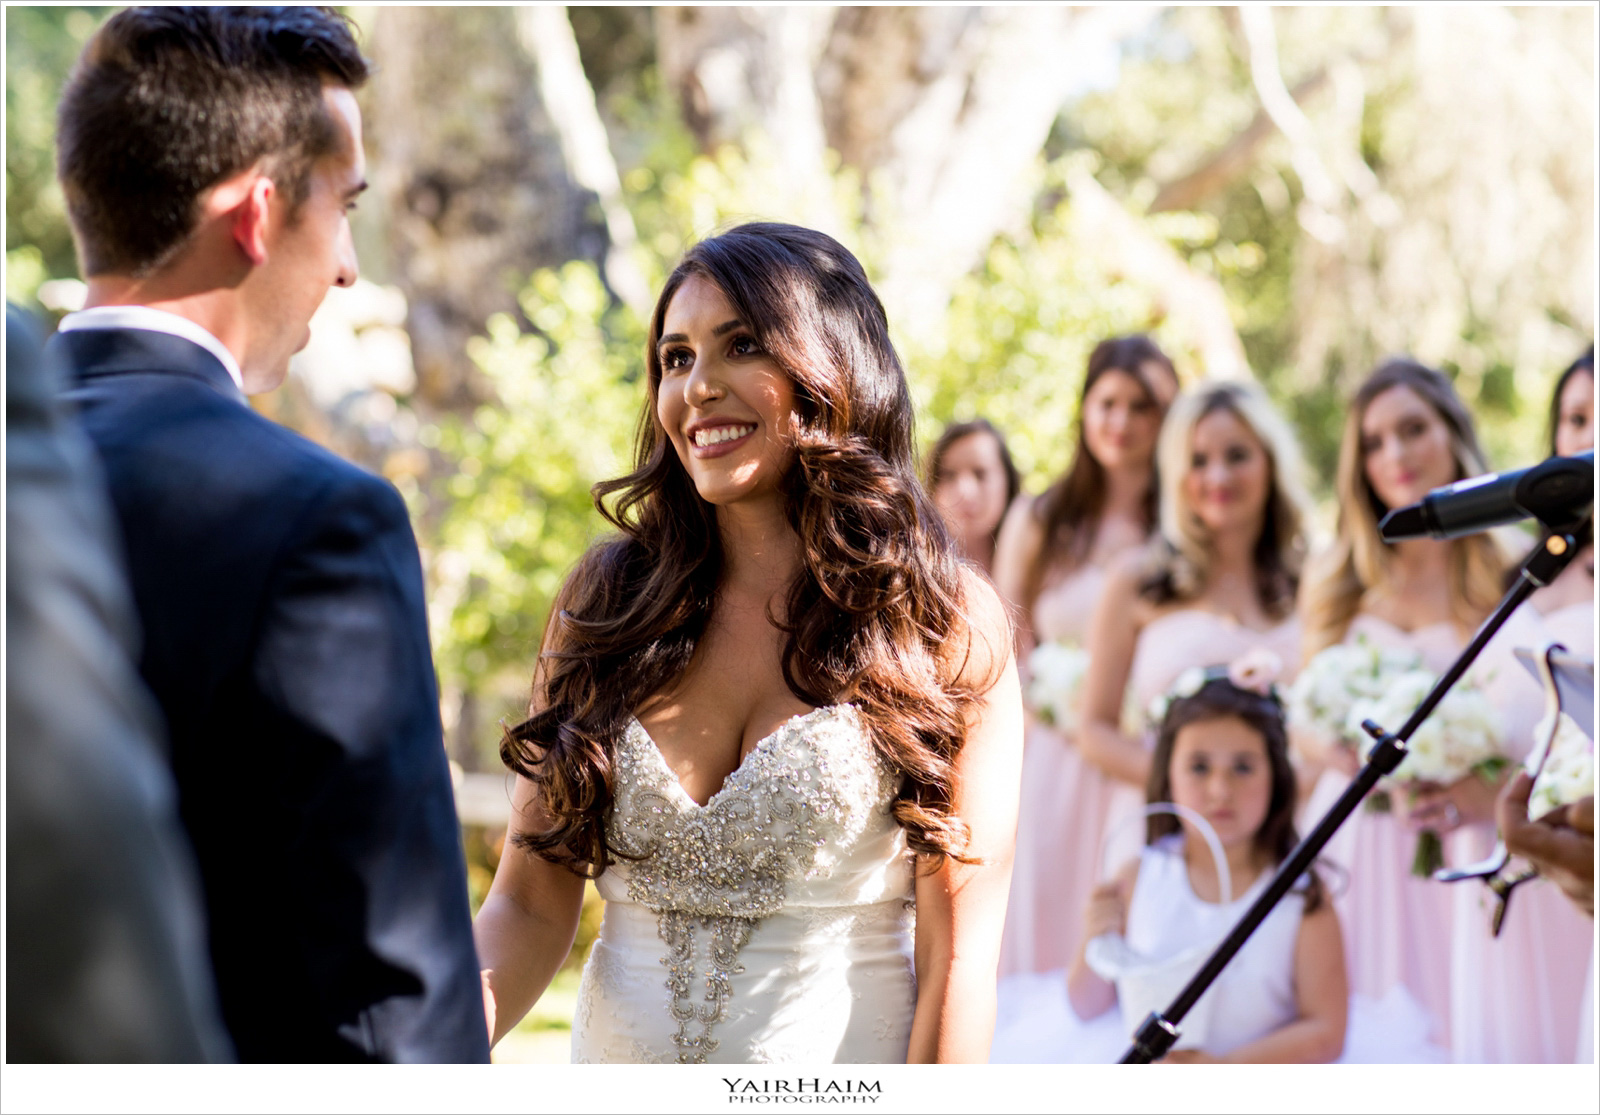 Destination-wedding-photographer-Yair-Haim-20